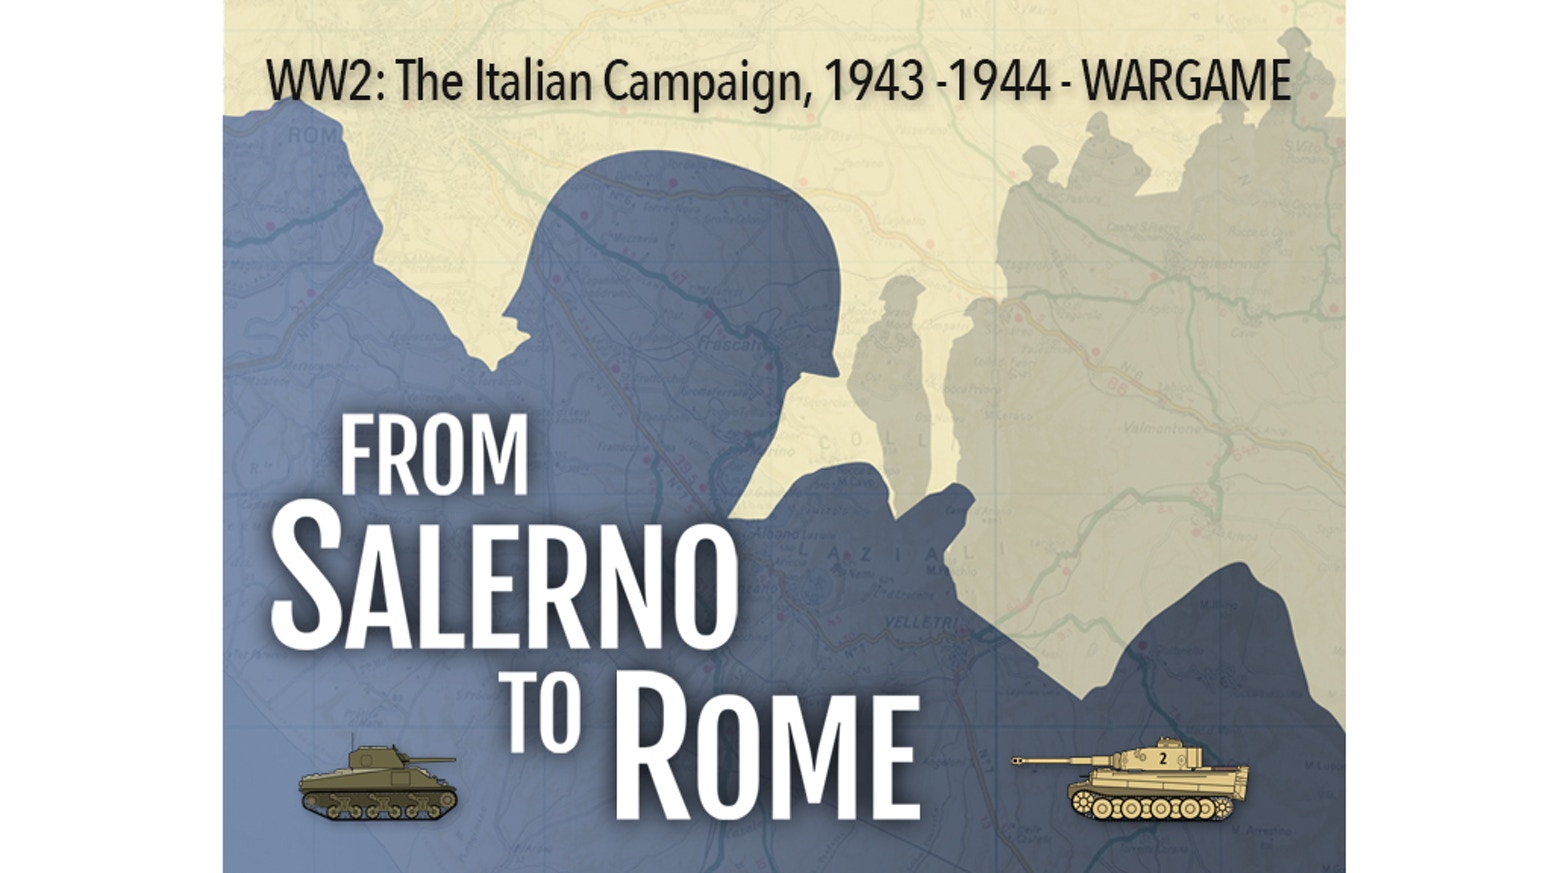 A big wargame whit an extremely flexible game structure about Italian Campaign in WW2 - An exciting game, tense, always different!